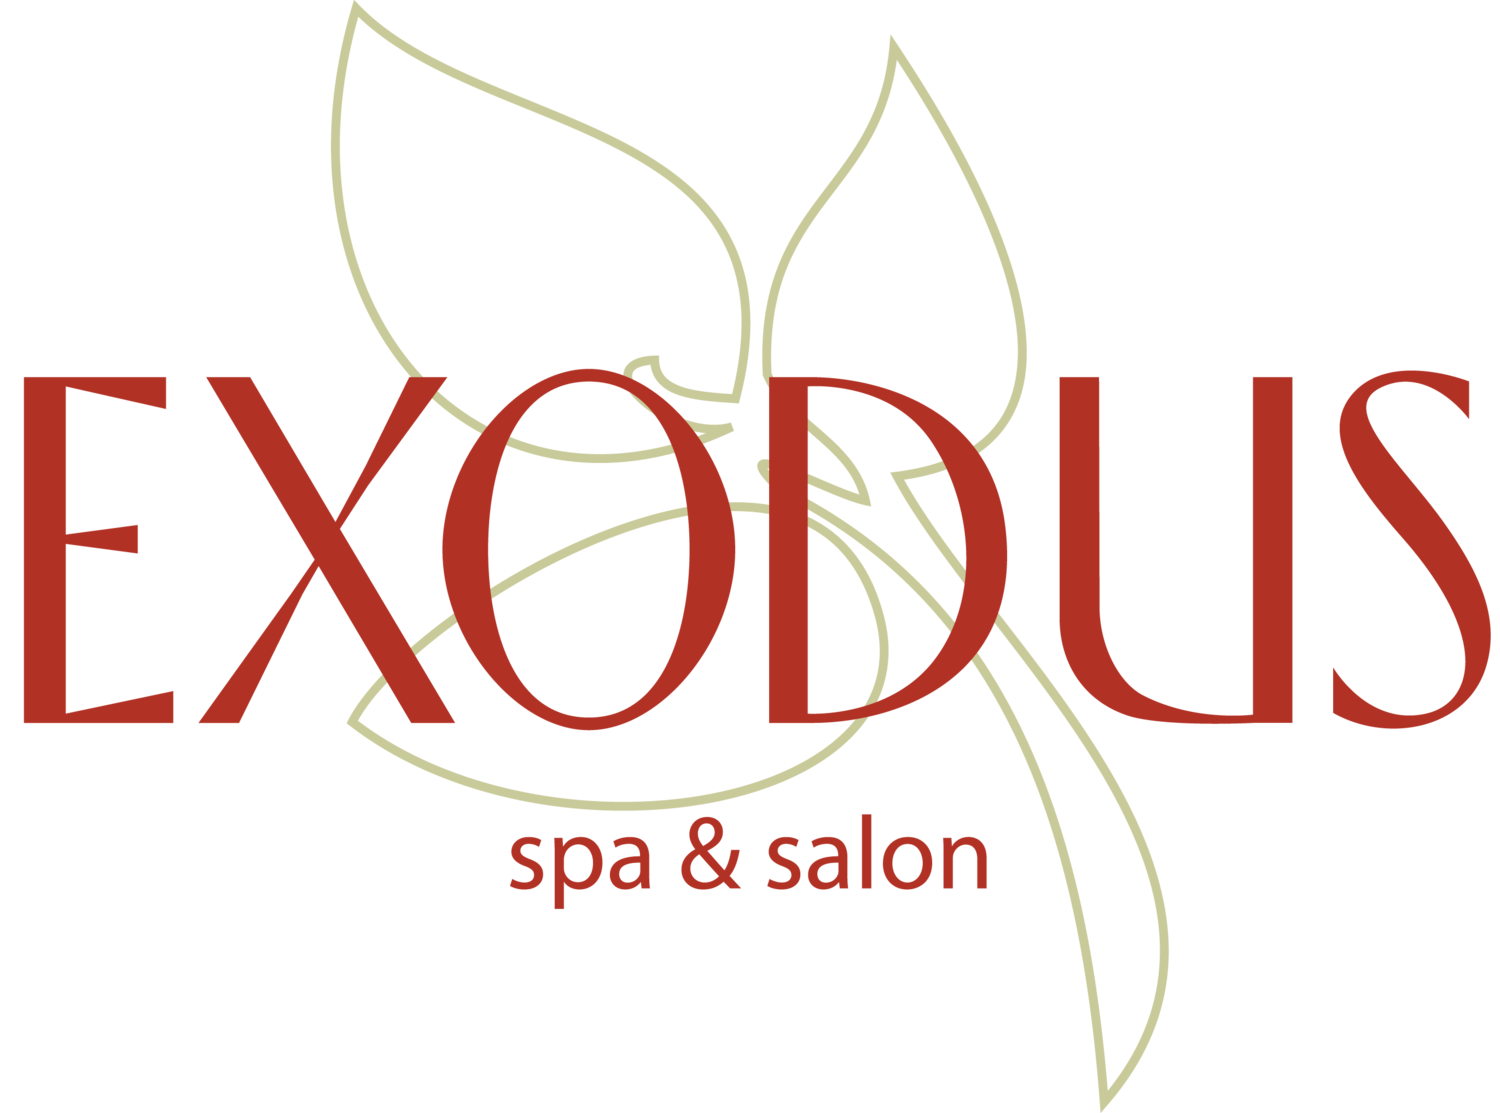 Exodus Spa & Salon